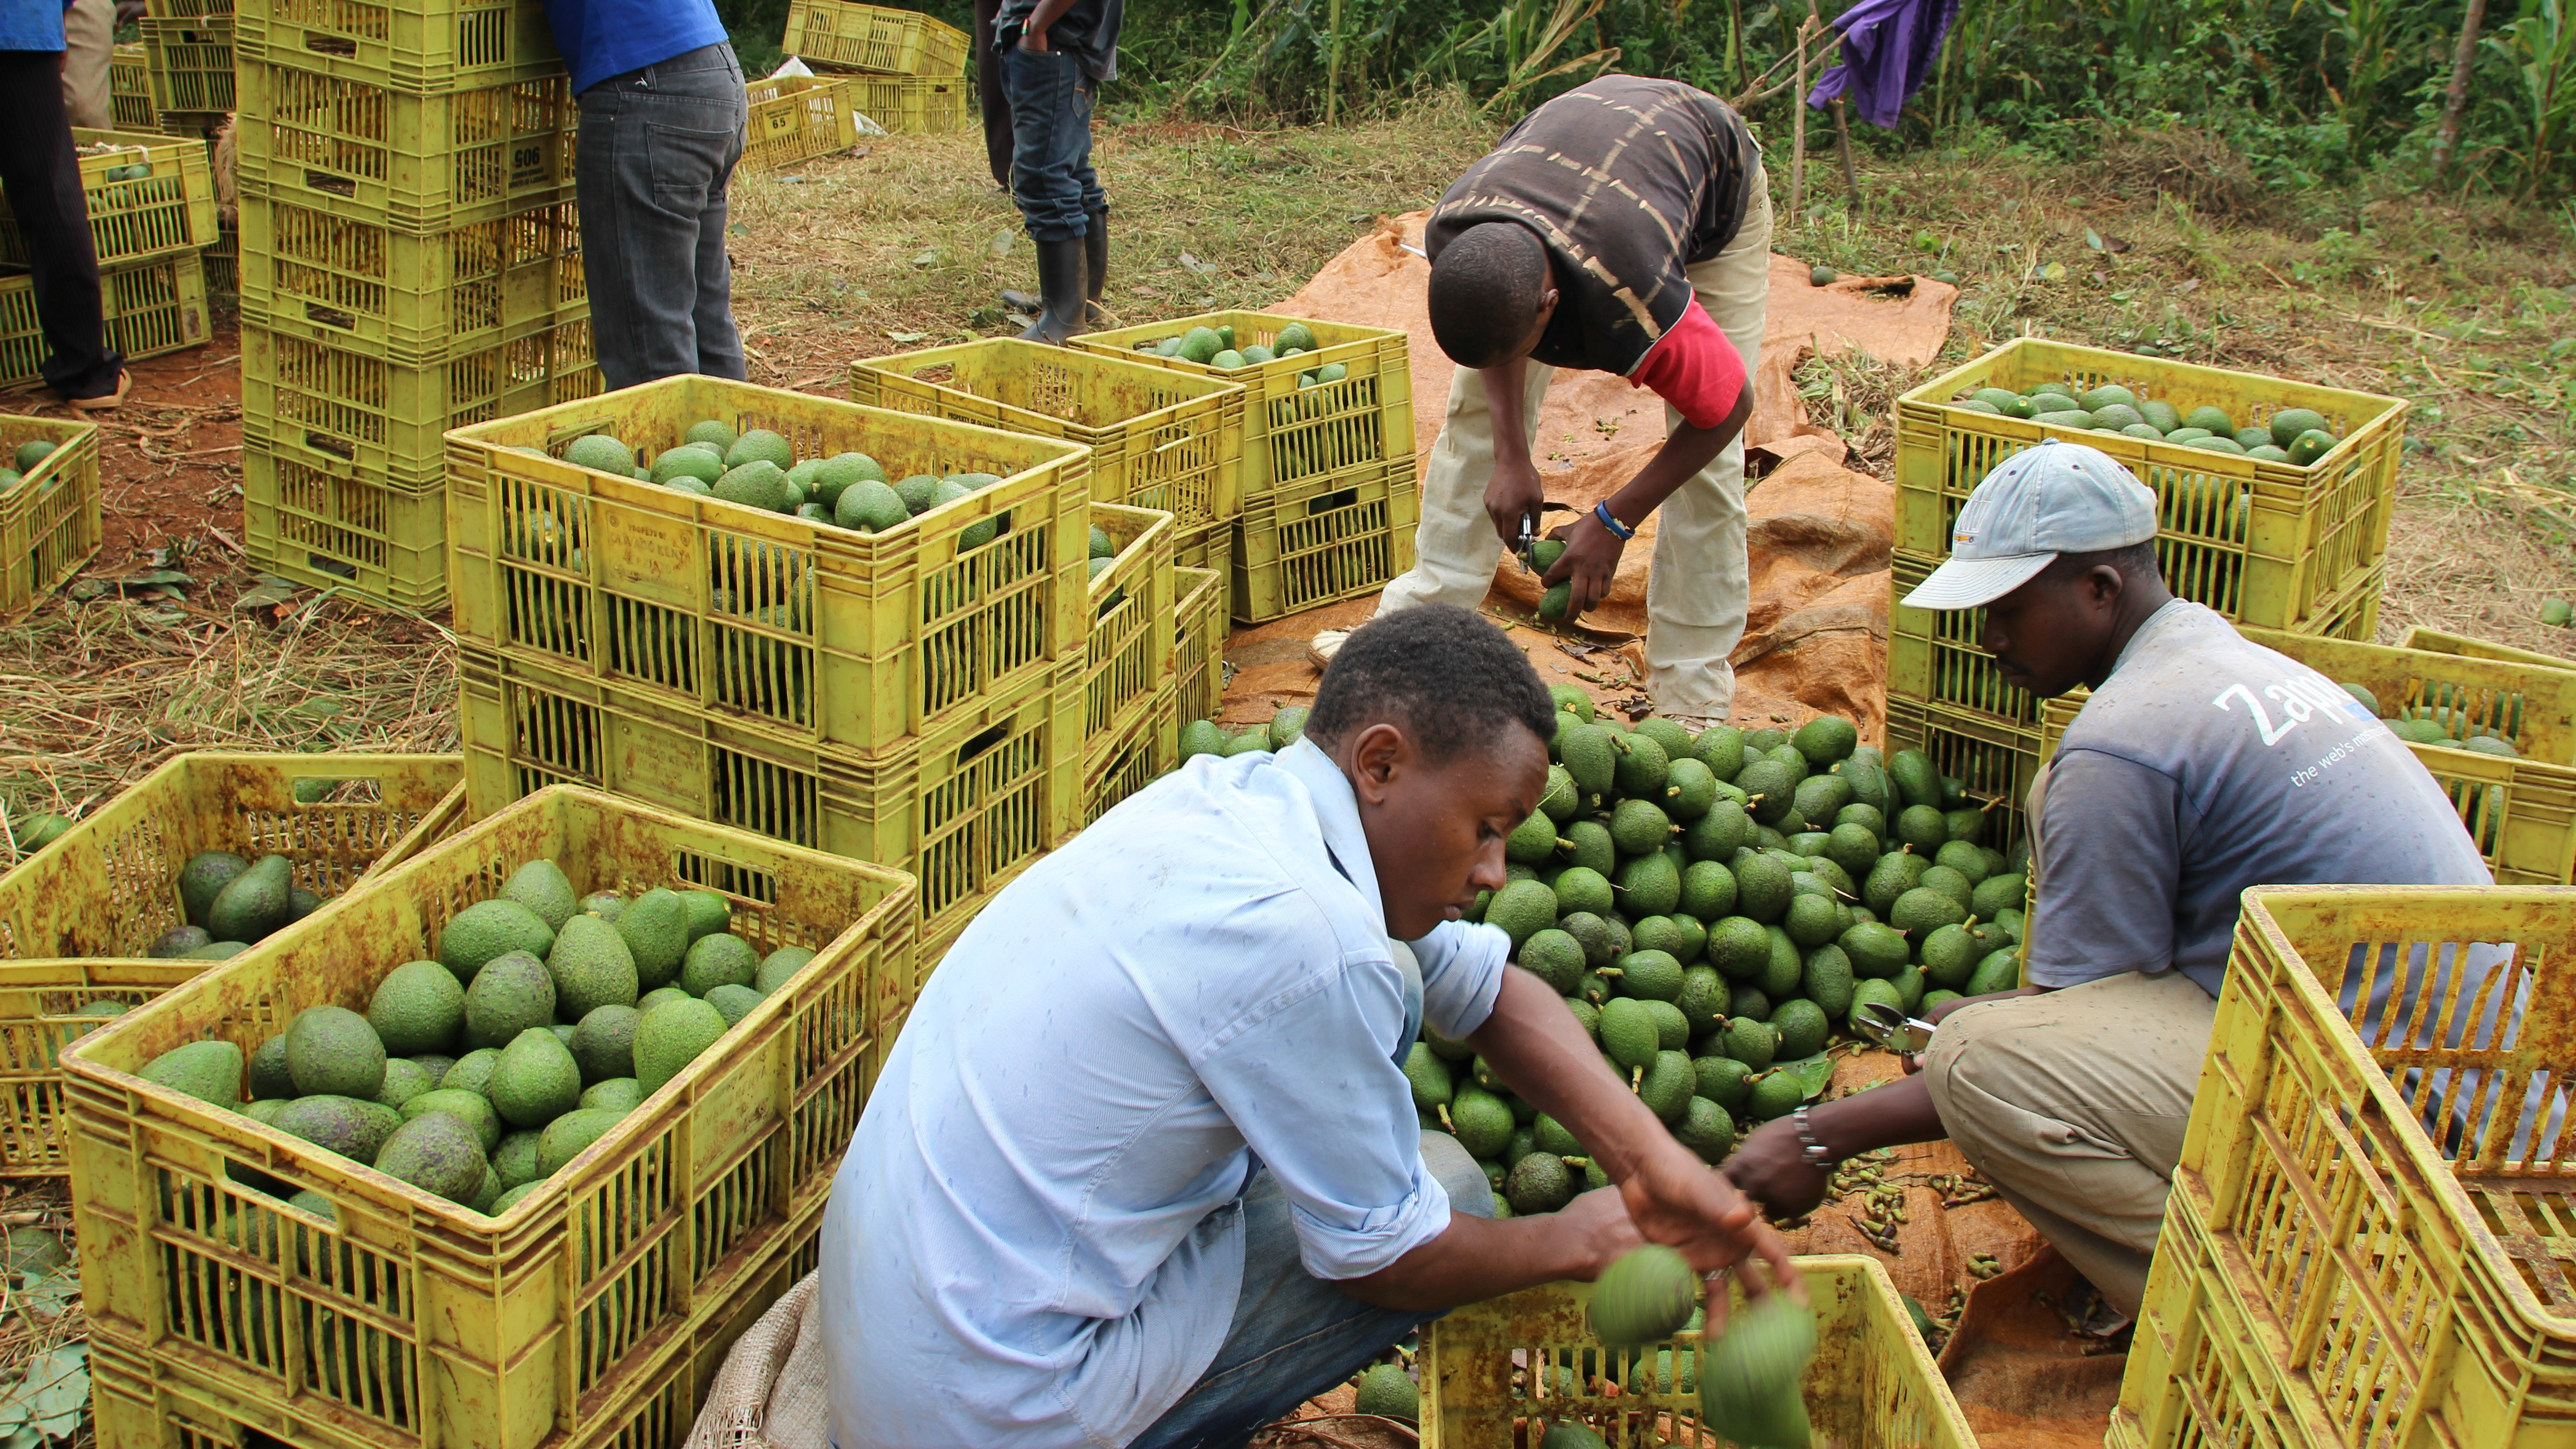 Over 300 avocado farmers receive globalgap certification ap certification include access to new business opportunities especially in the european market and the ability to earn higher incomes through price xflitez Gallery